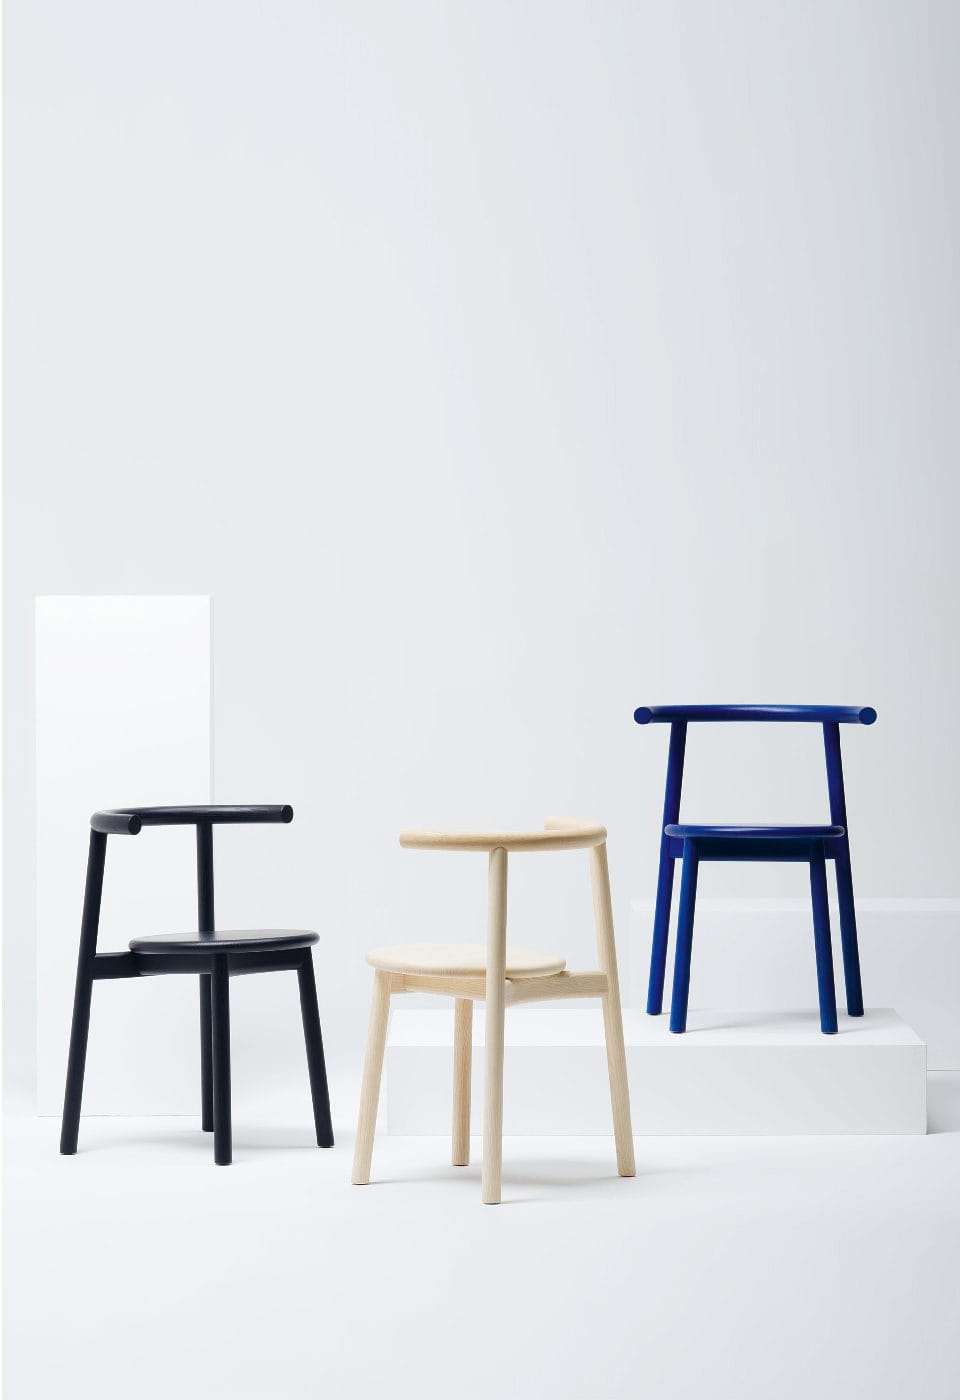 Mc5 Solo Collection By Studio Nitzan Cohen For Mattiazzi